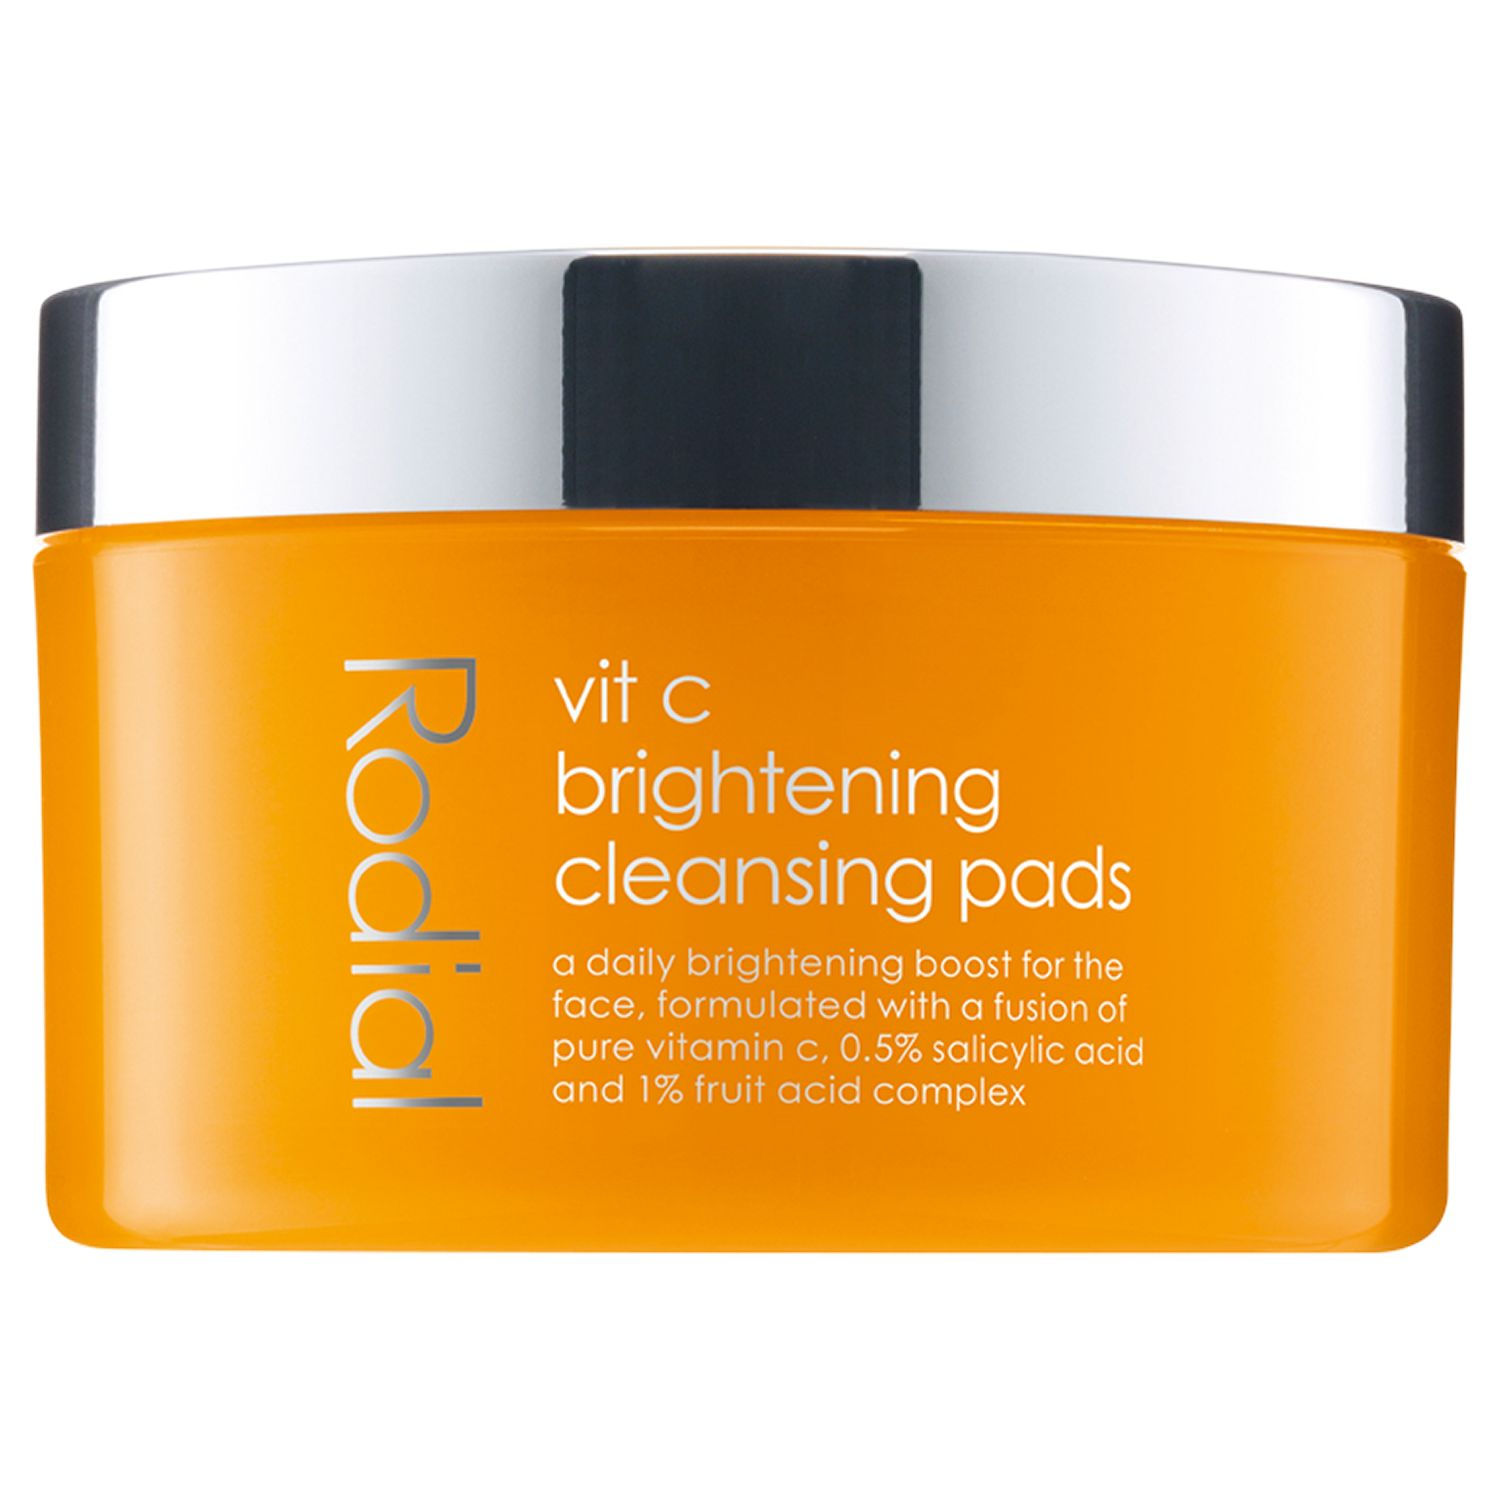 Rodial Rodial Vit C Brightening Cleansing Pads